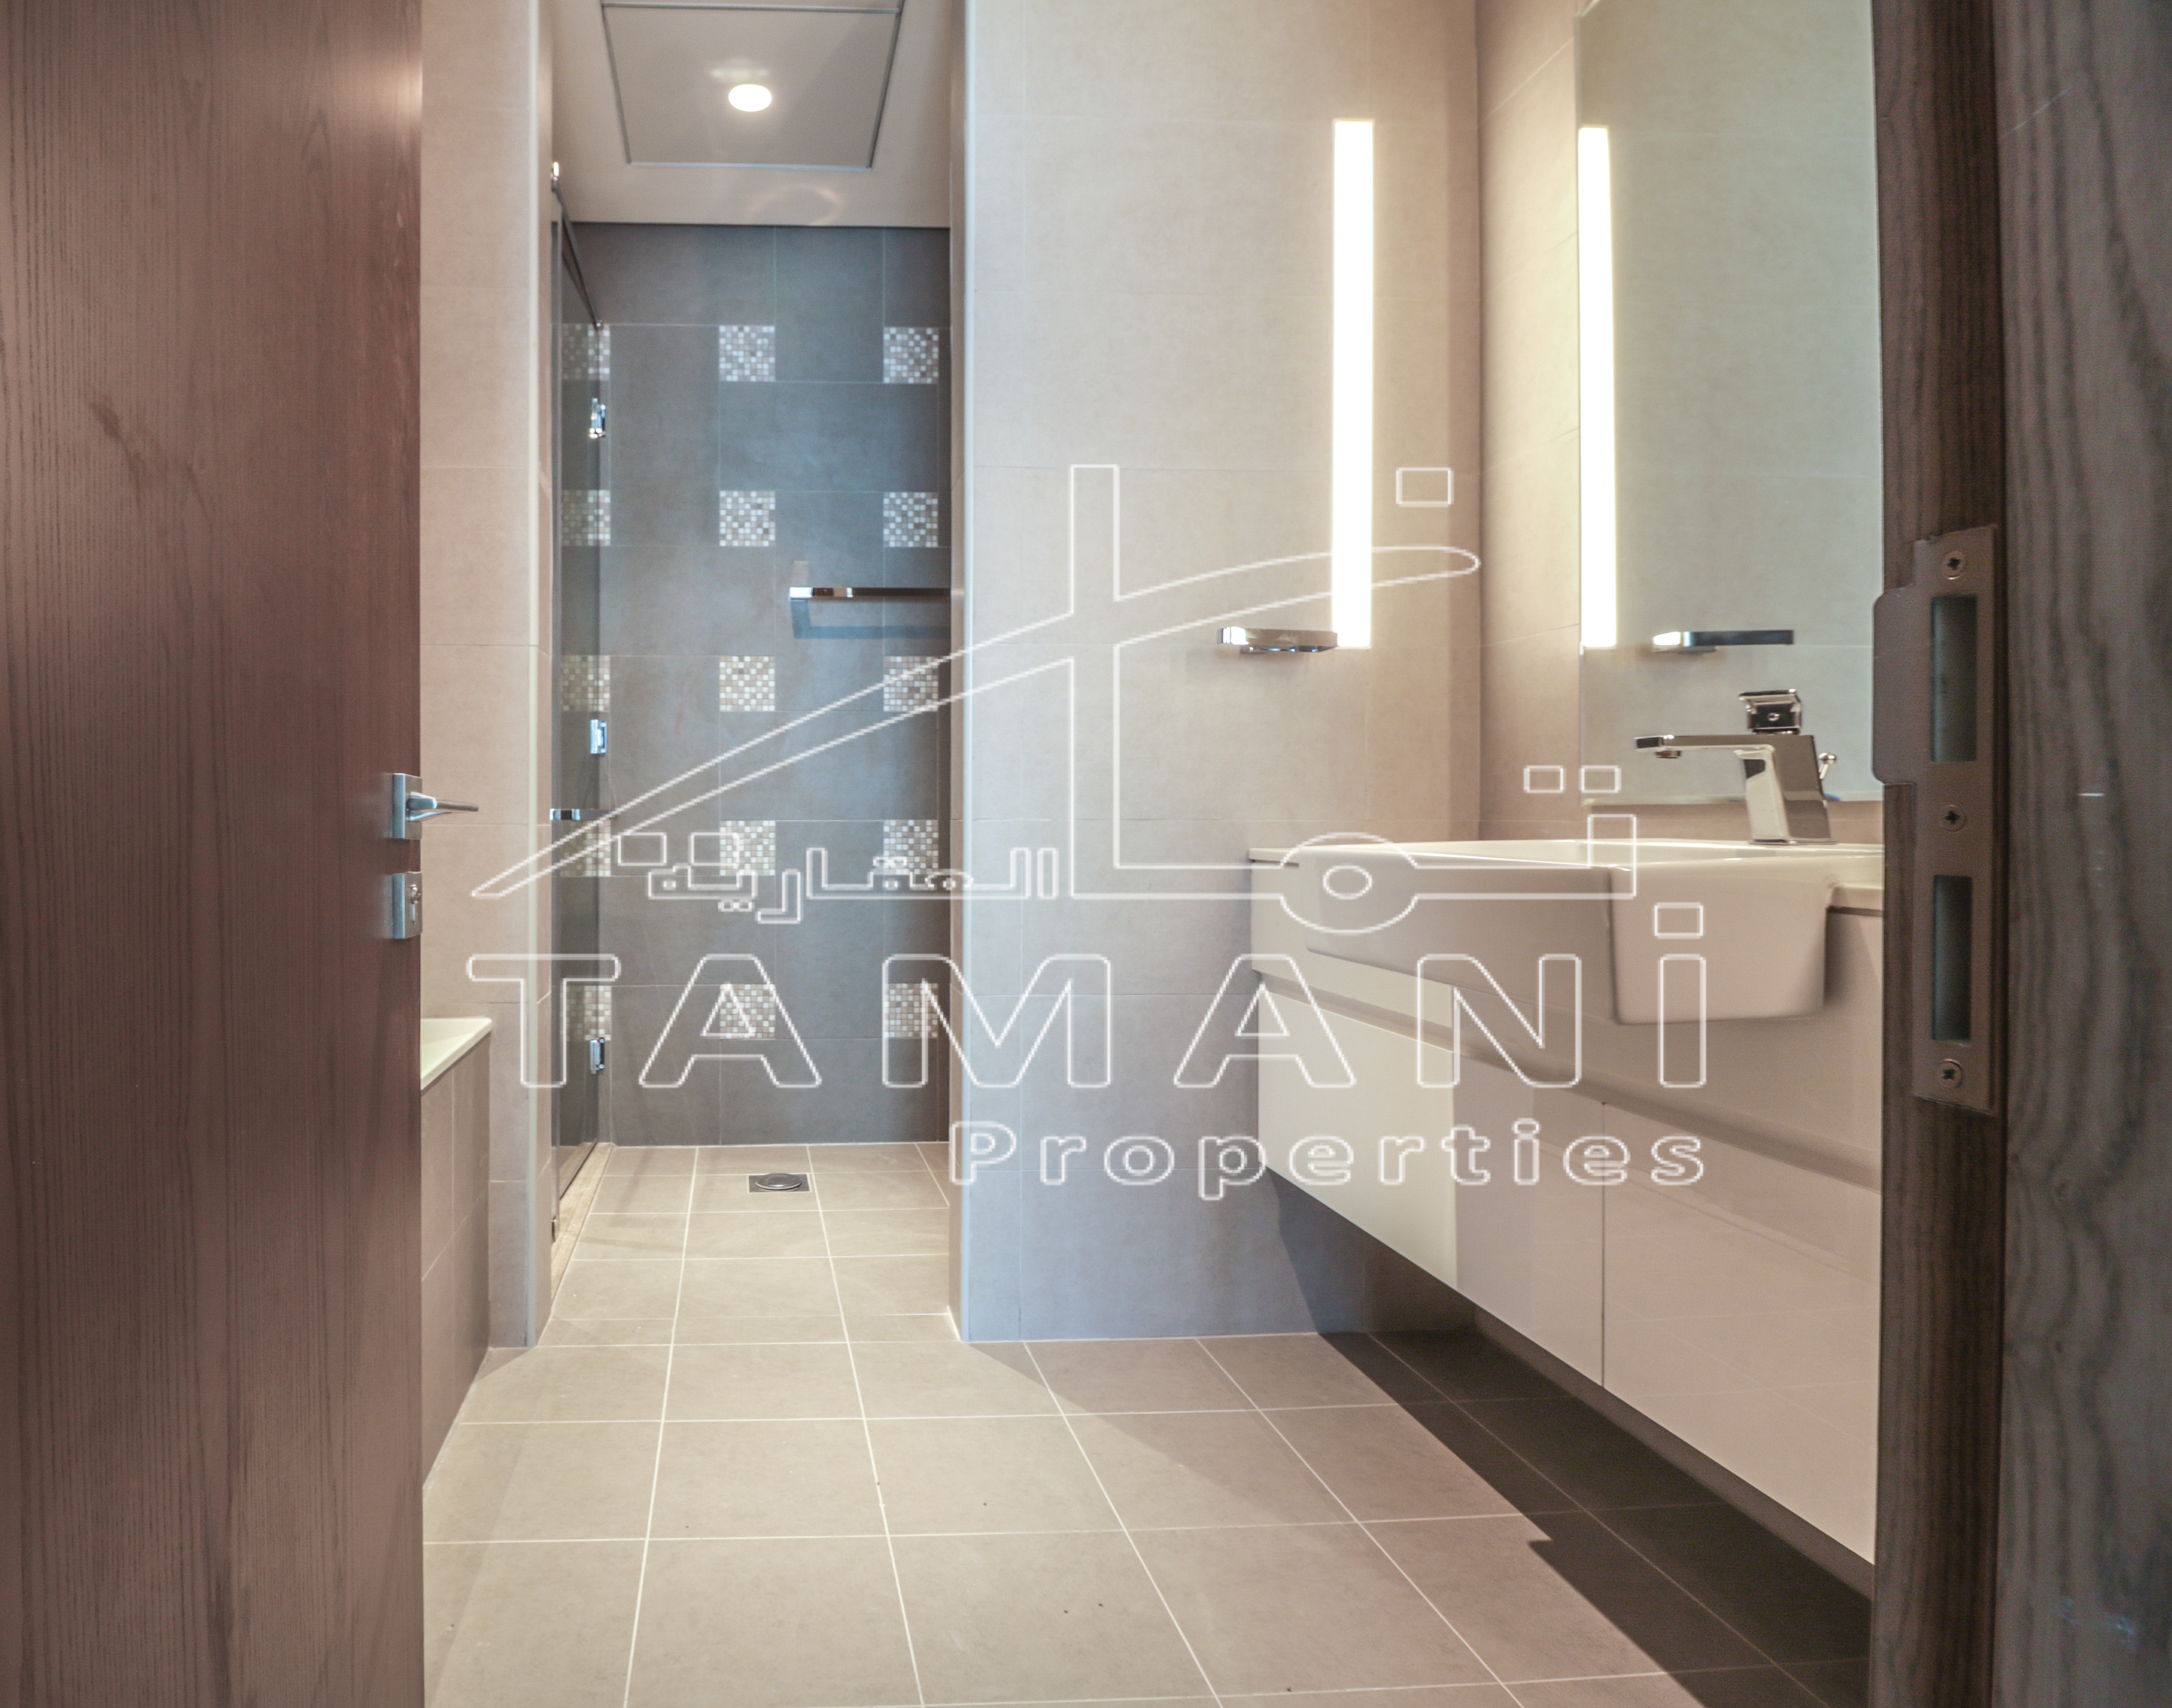 BrandNew 1BR Luxury Apartment Modern Fit - The Atria